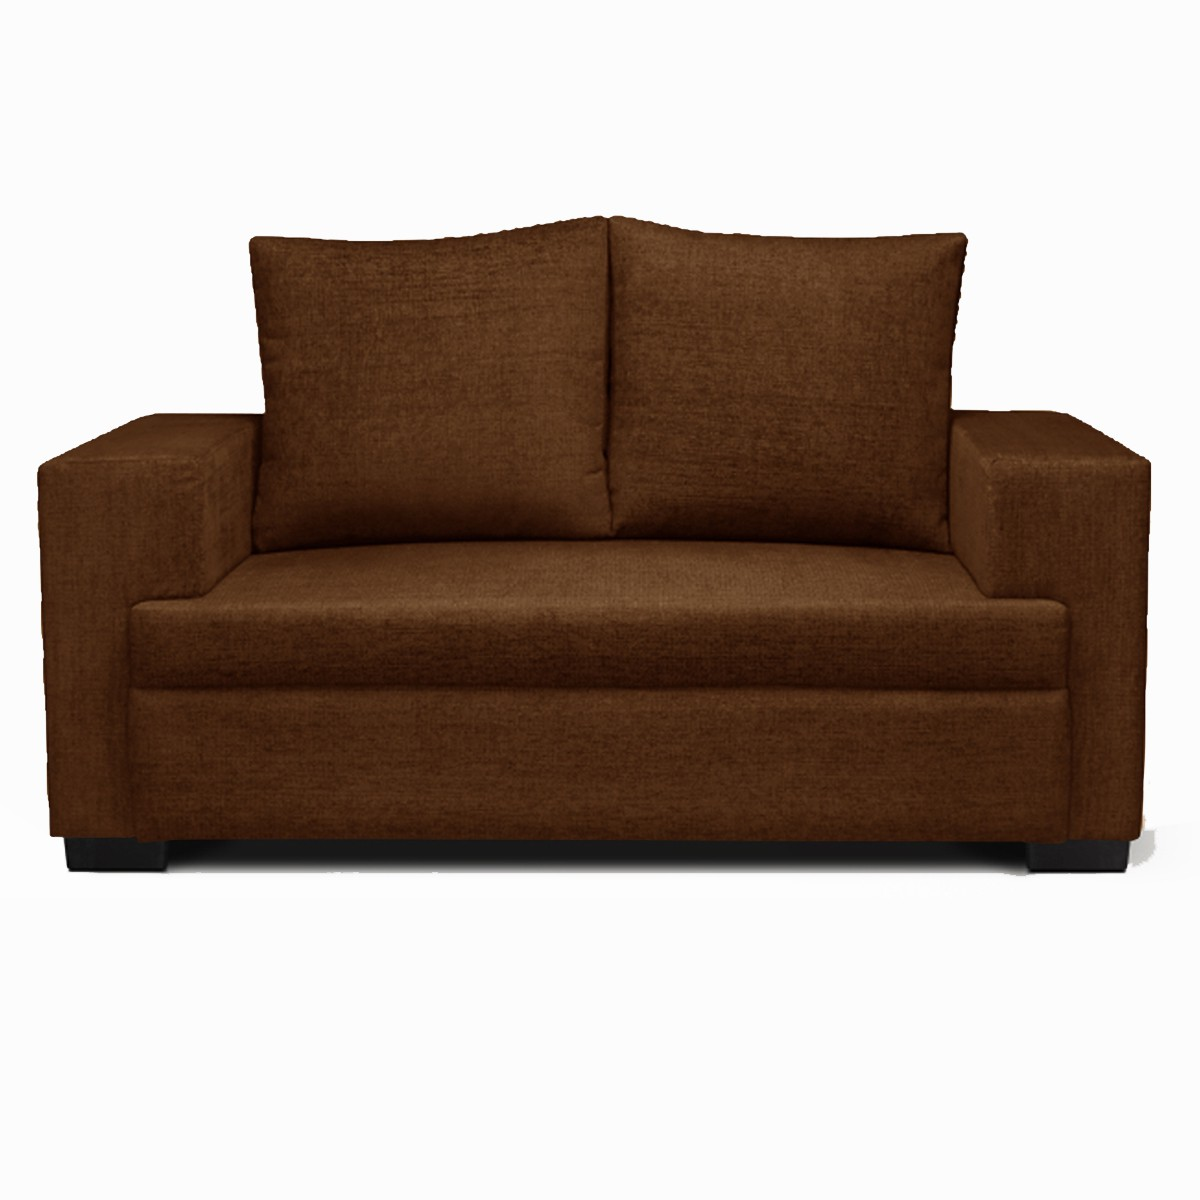 View Sethu Furniture Fabric 2 Seater Sofa(Finish Color - Coffee) Furniture (Sethu Furniture)